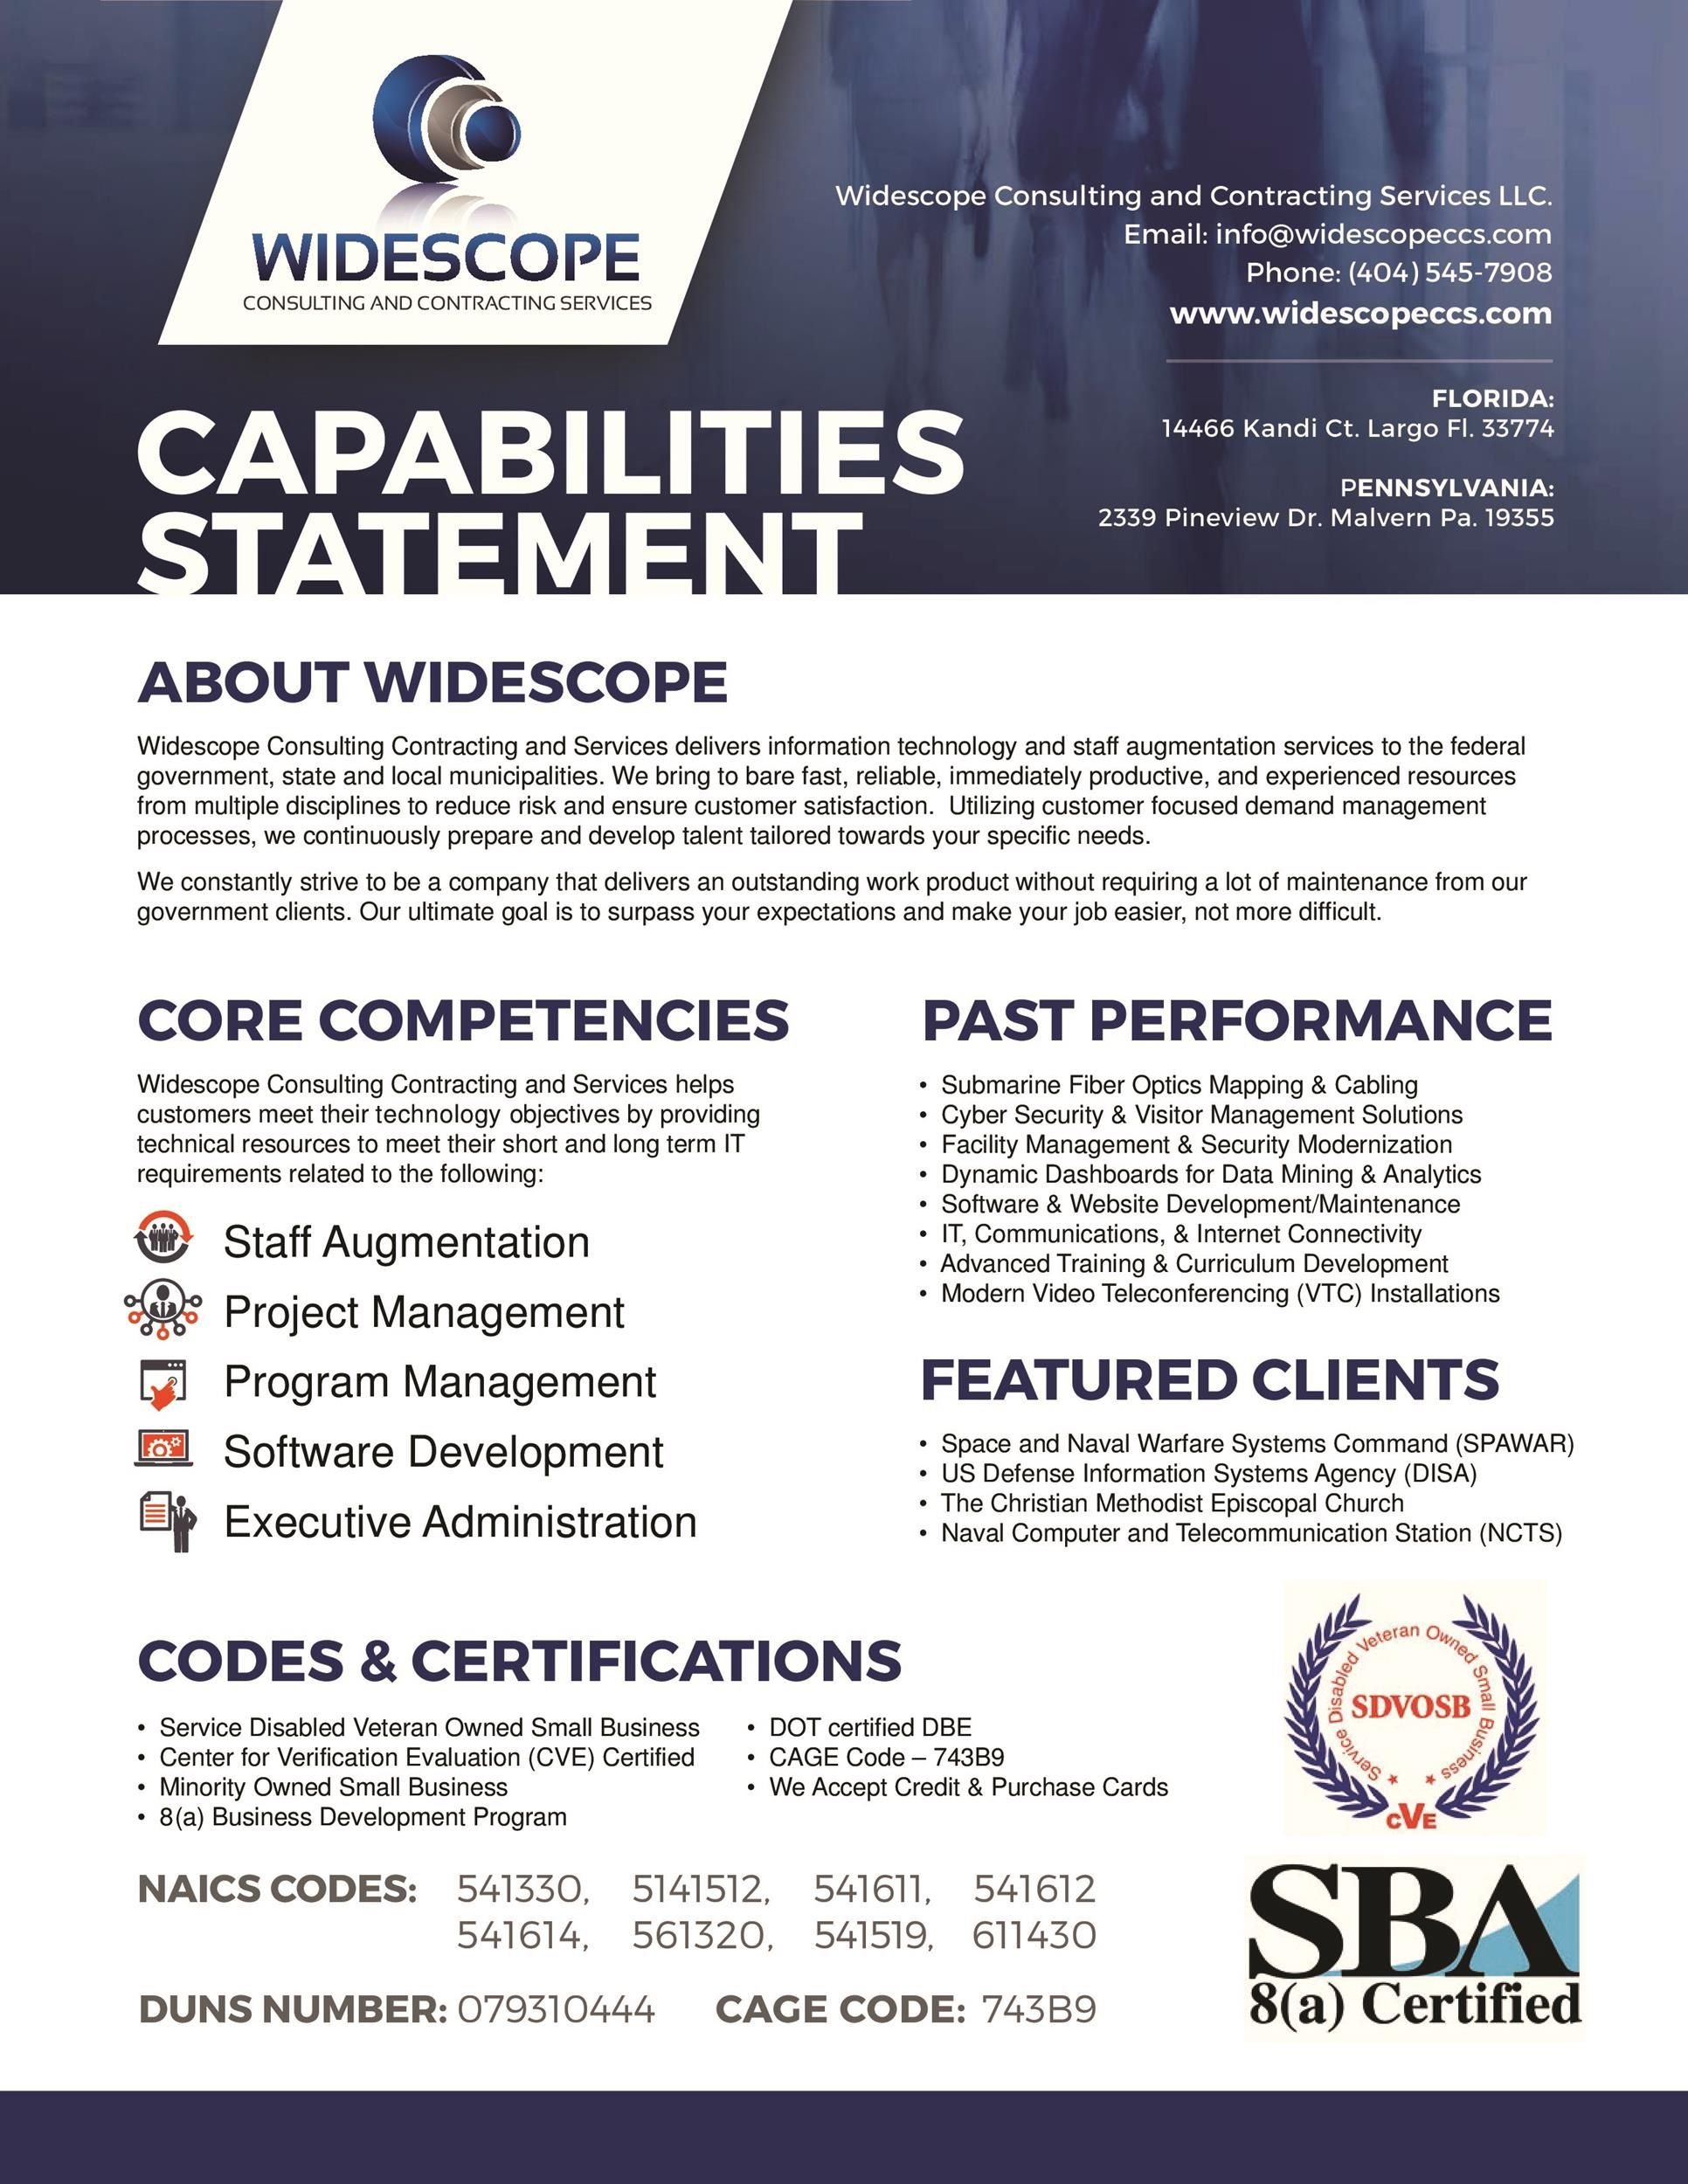 008 Surprising Capability Statement Template Free Picture  Word Editable DesignFull